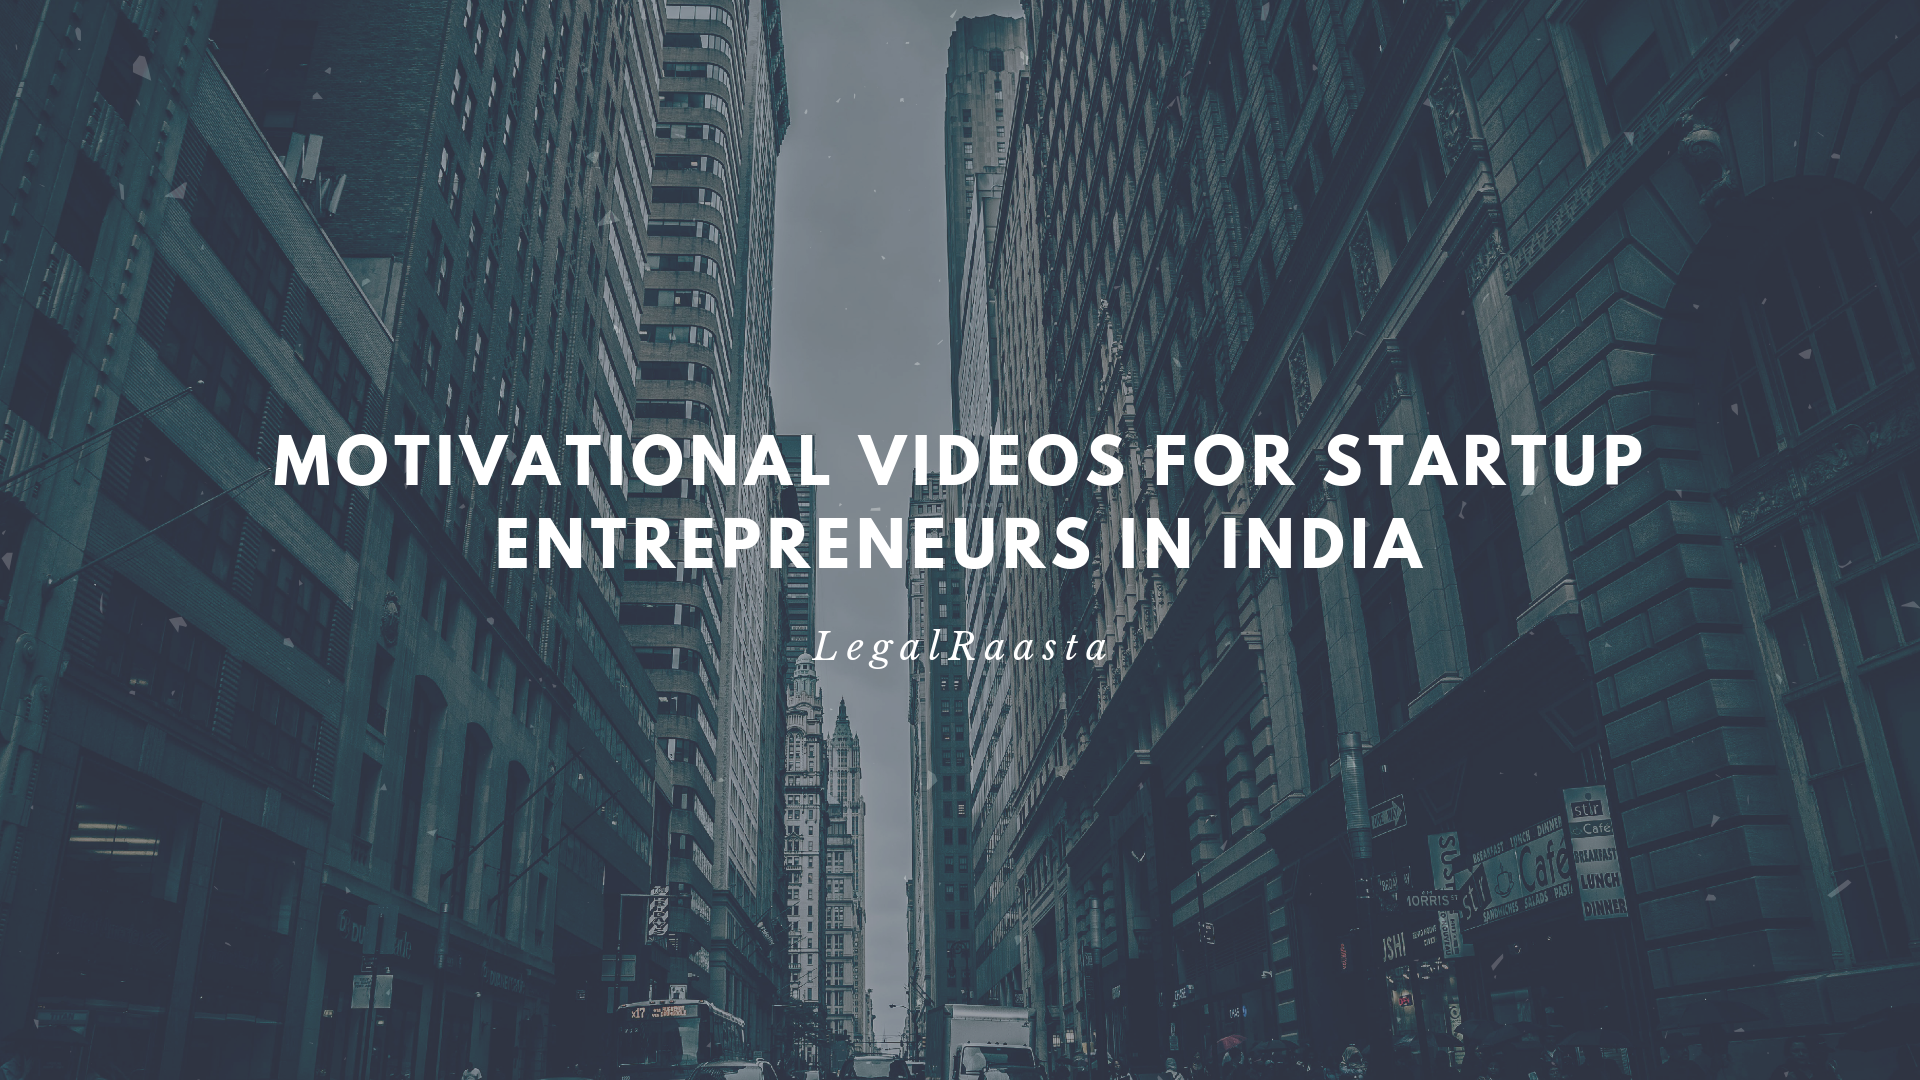 Motivational videos for startup entrepreneurs in India